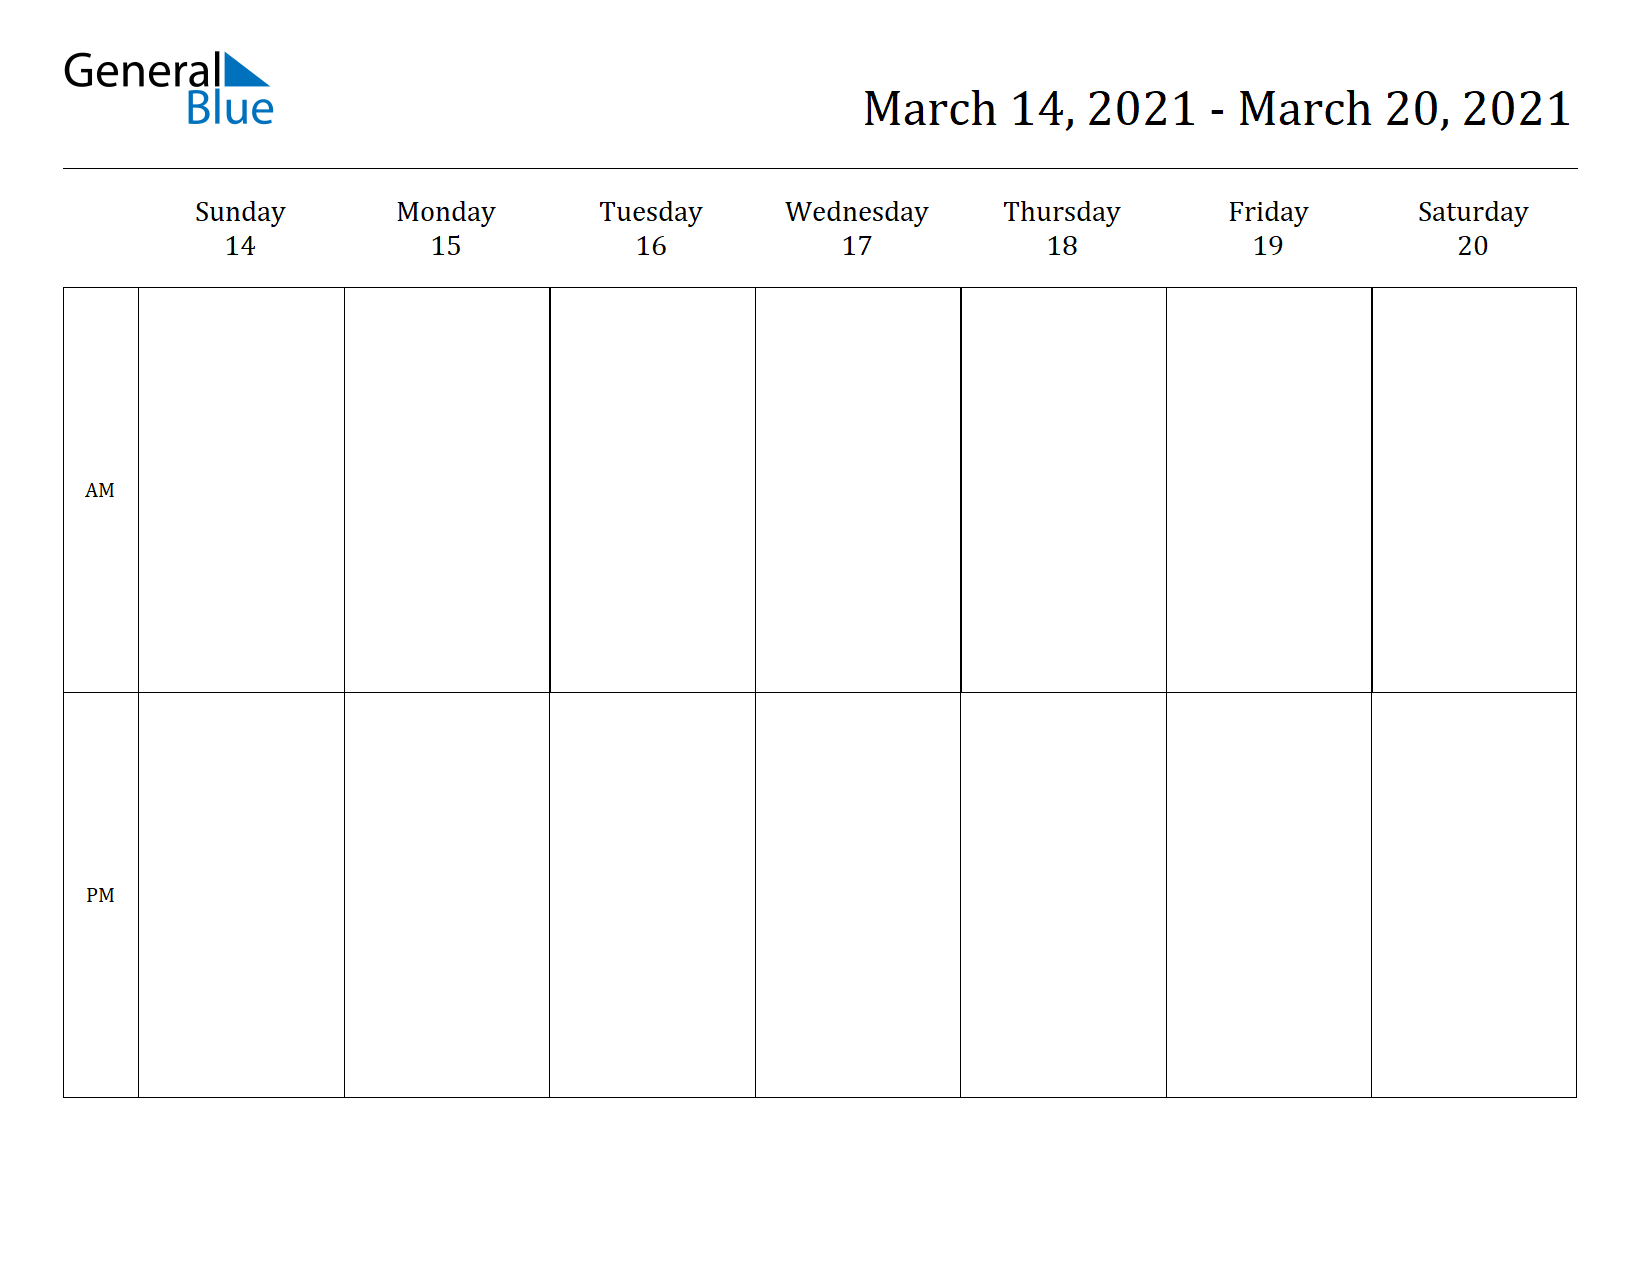 Weekly Calendar for Mar 14, 2021 to Mar 20, 2021